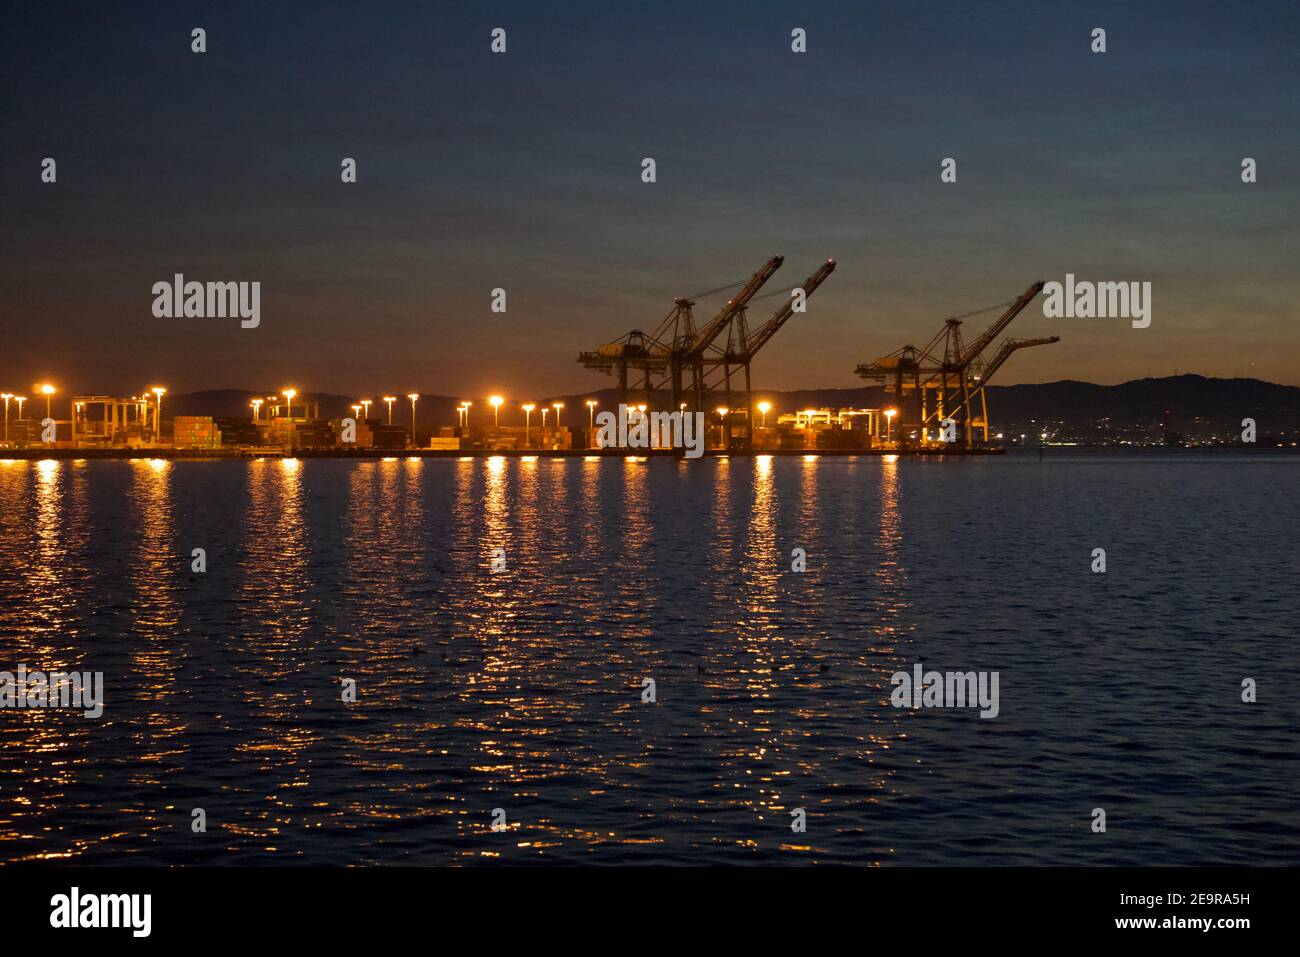 Port of Oakland at sunset. Intermodal shipping containers and cranes in the San Francisco Bay. International trade and commerce. Stock Photo